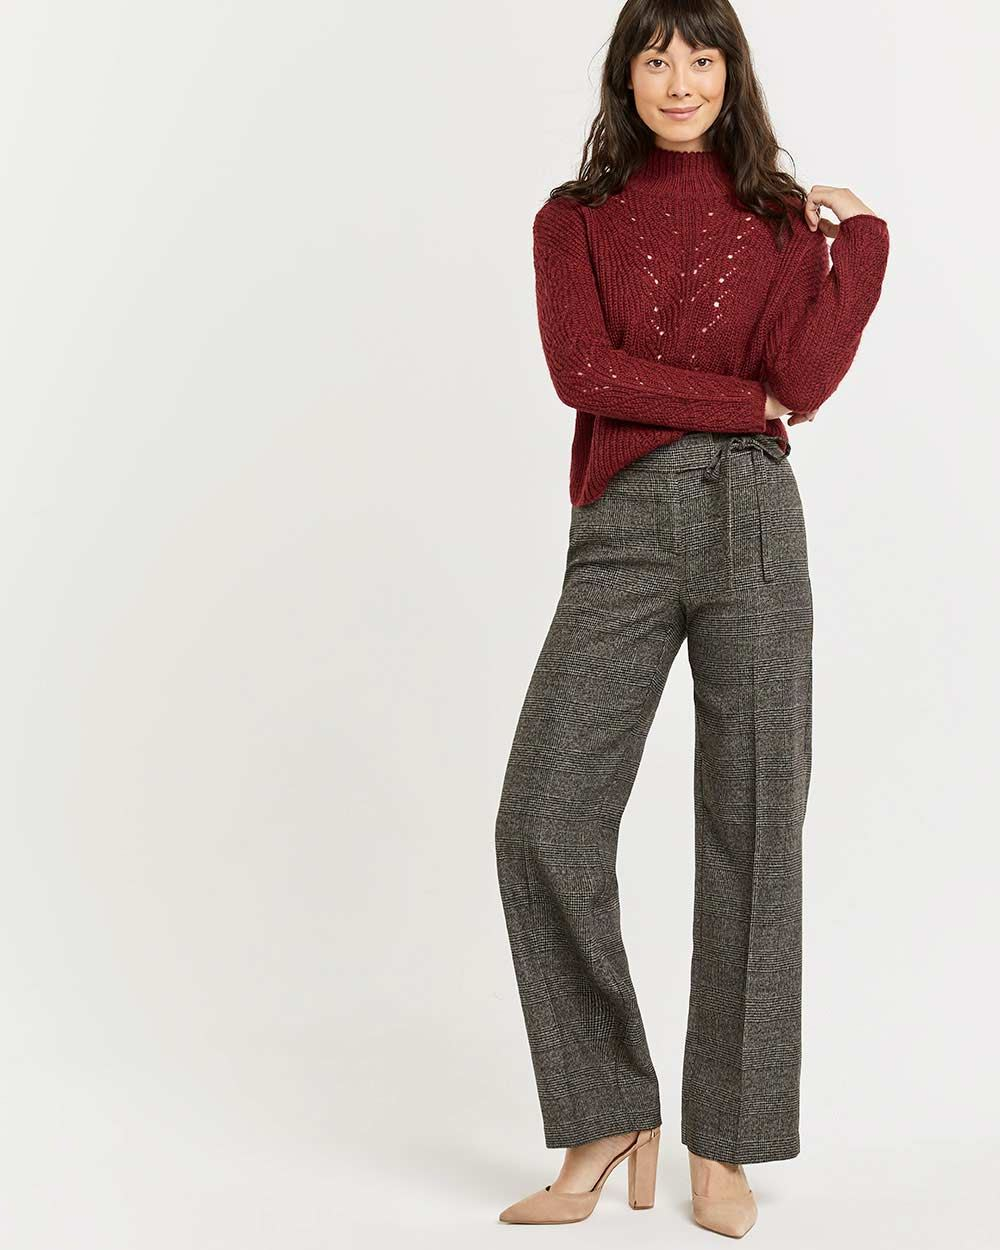 Glen Plaid Wide Leg Pants with Sash